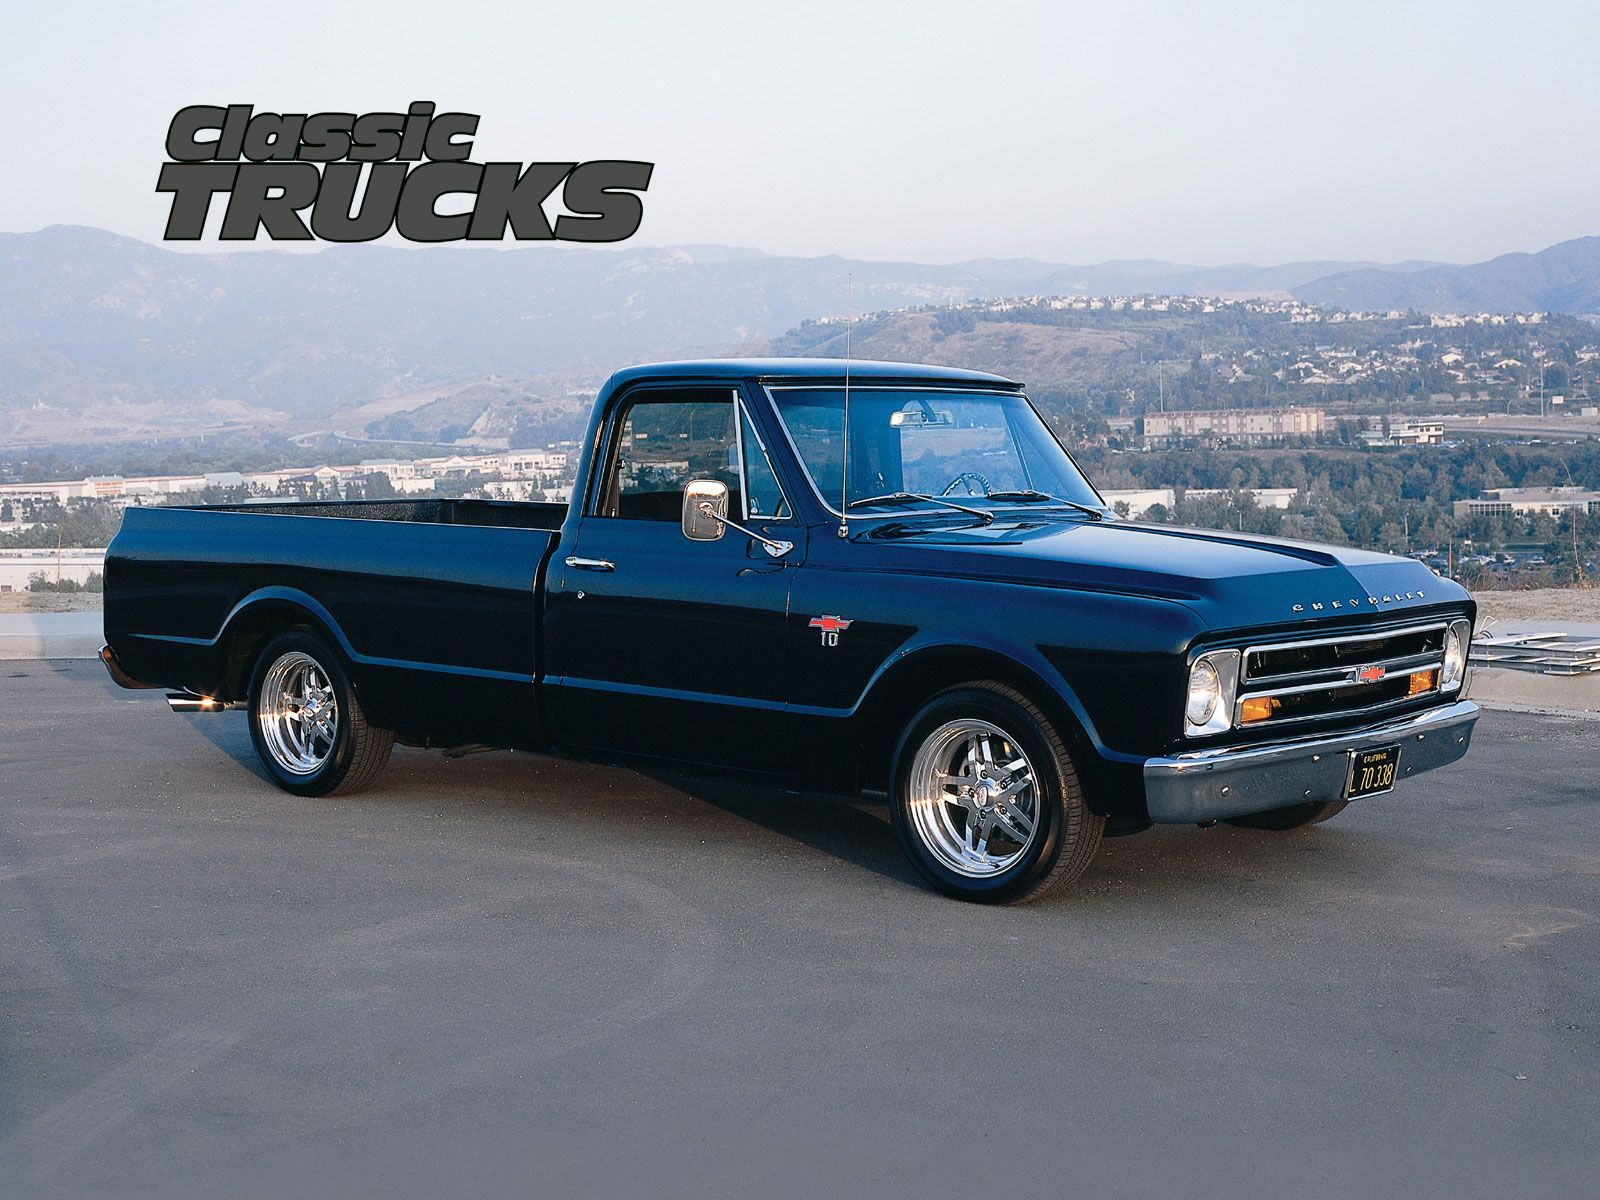 Get free and classic truck desktop wallpapers for your computer from classic truck magazine featuring wallpapers of ford ford classic chevy truck and many